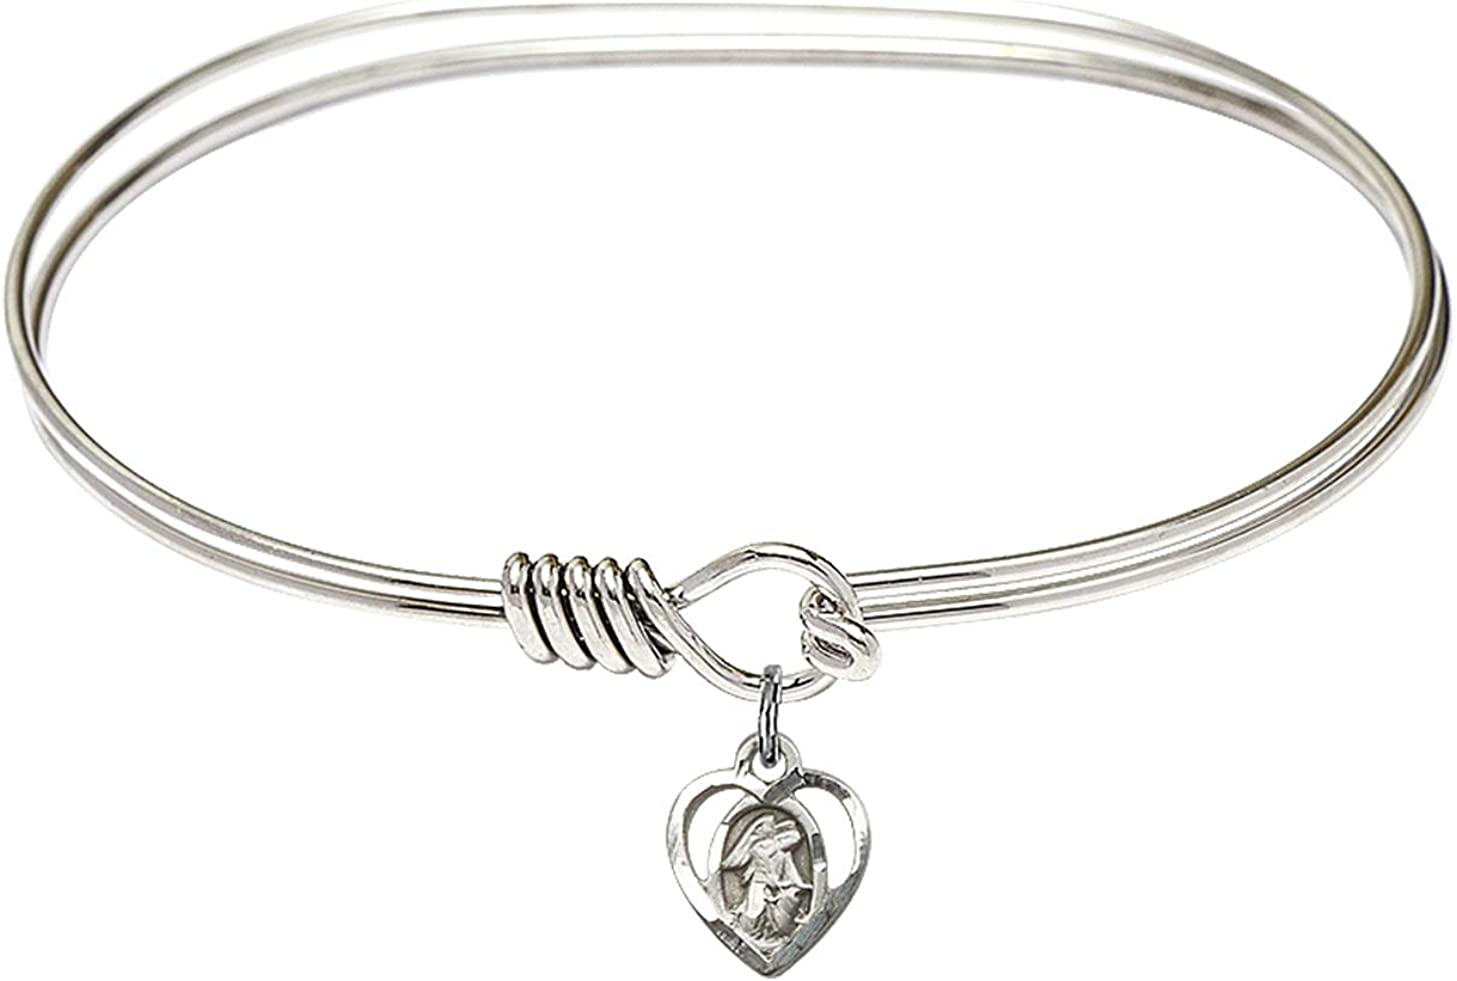 DiamondJewelryNY Eye Hook Bangle Bracelet with a Guardian Angel Charm.